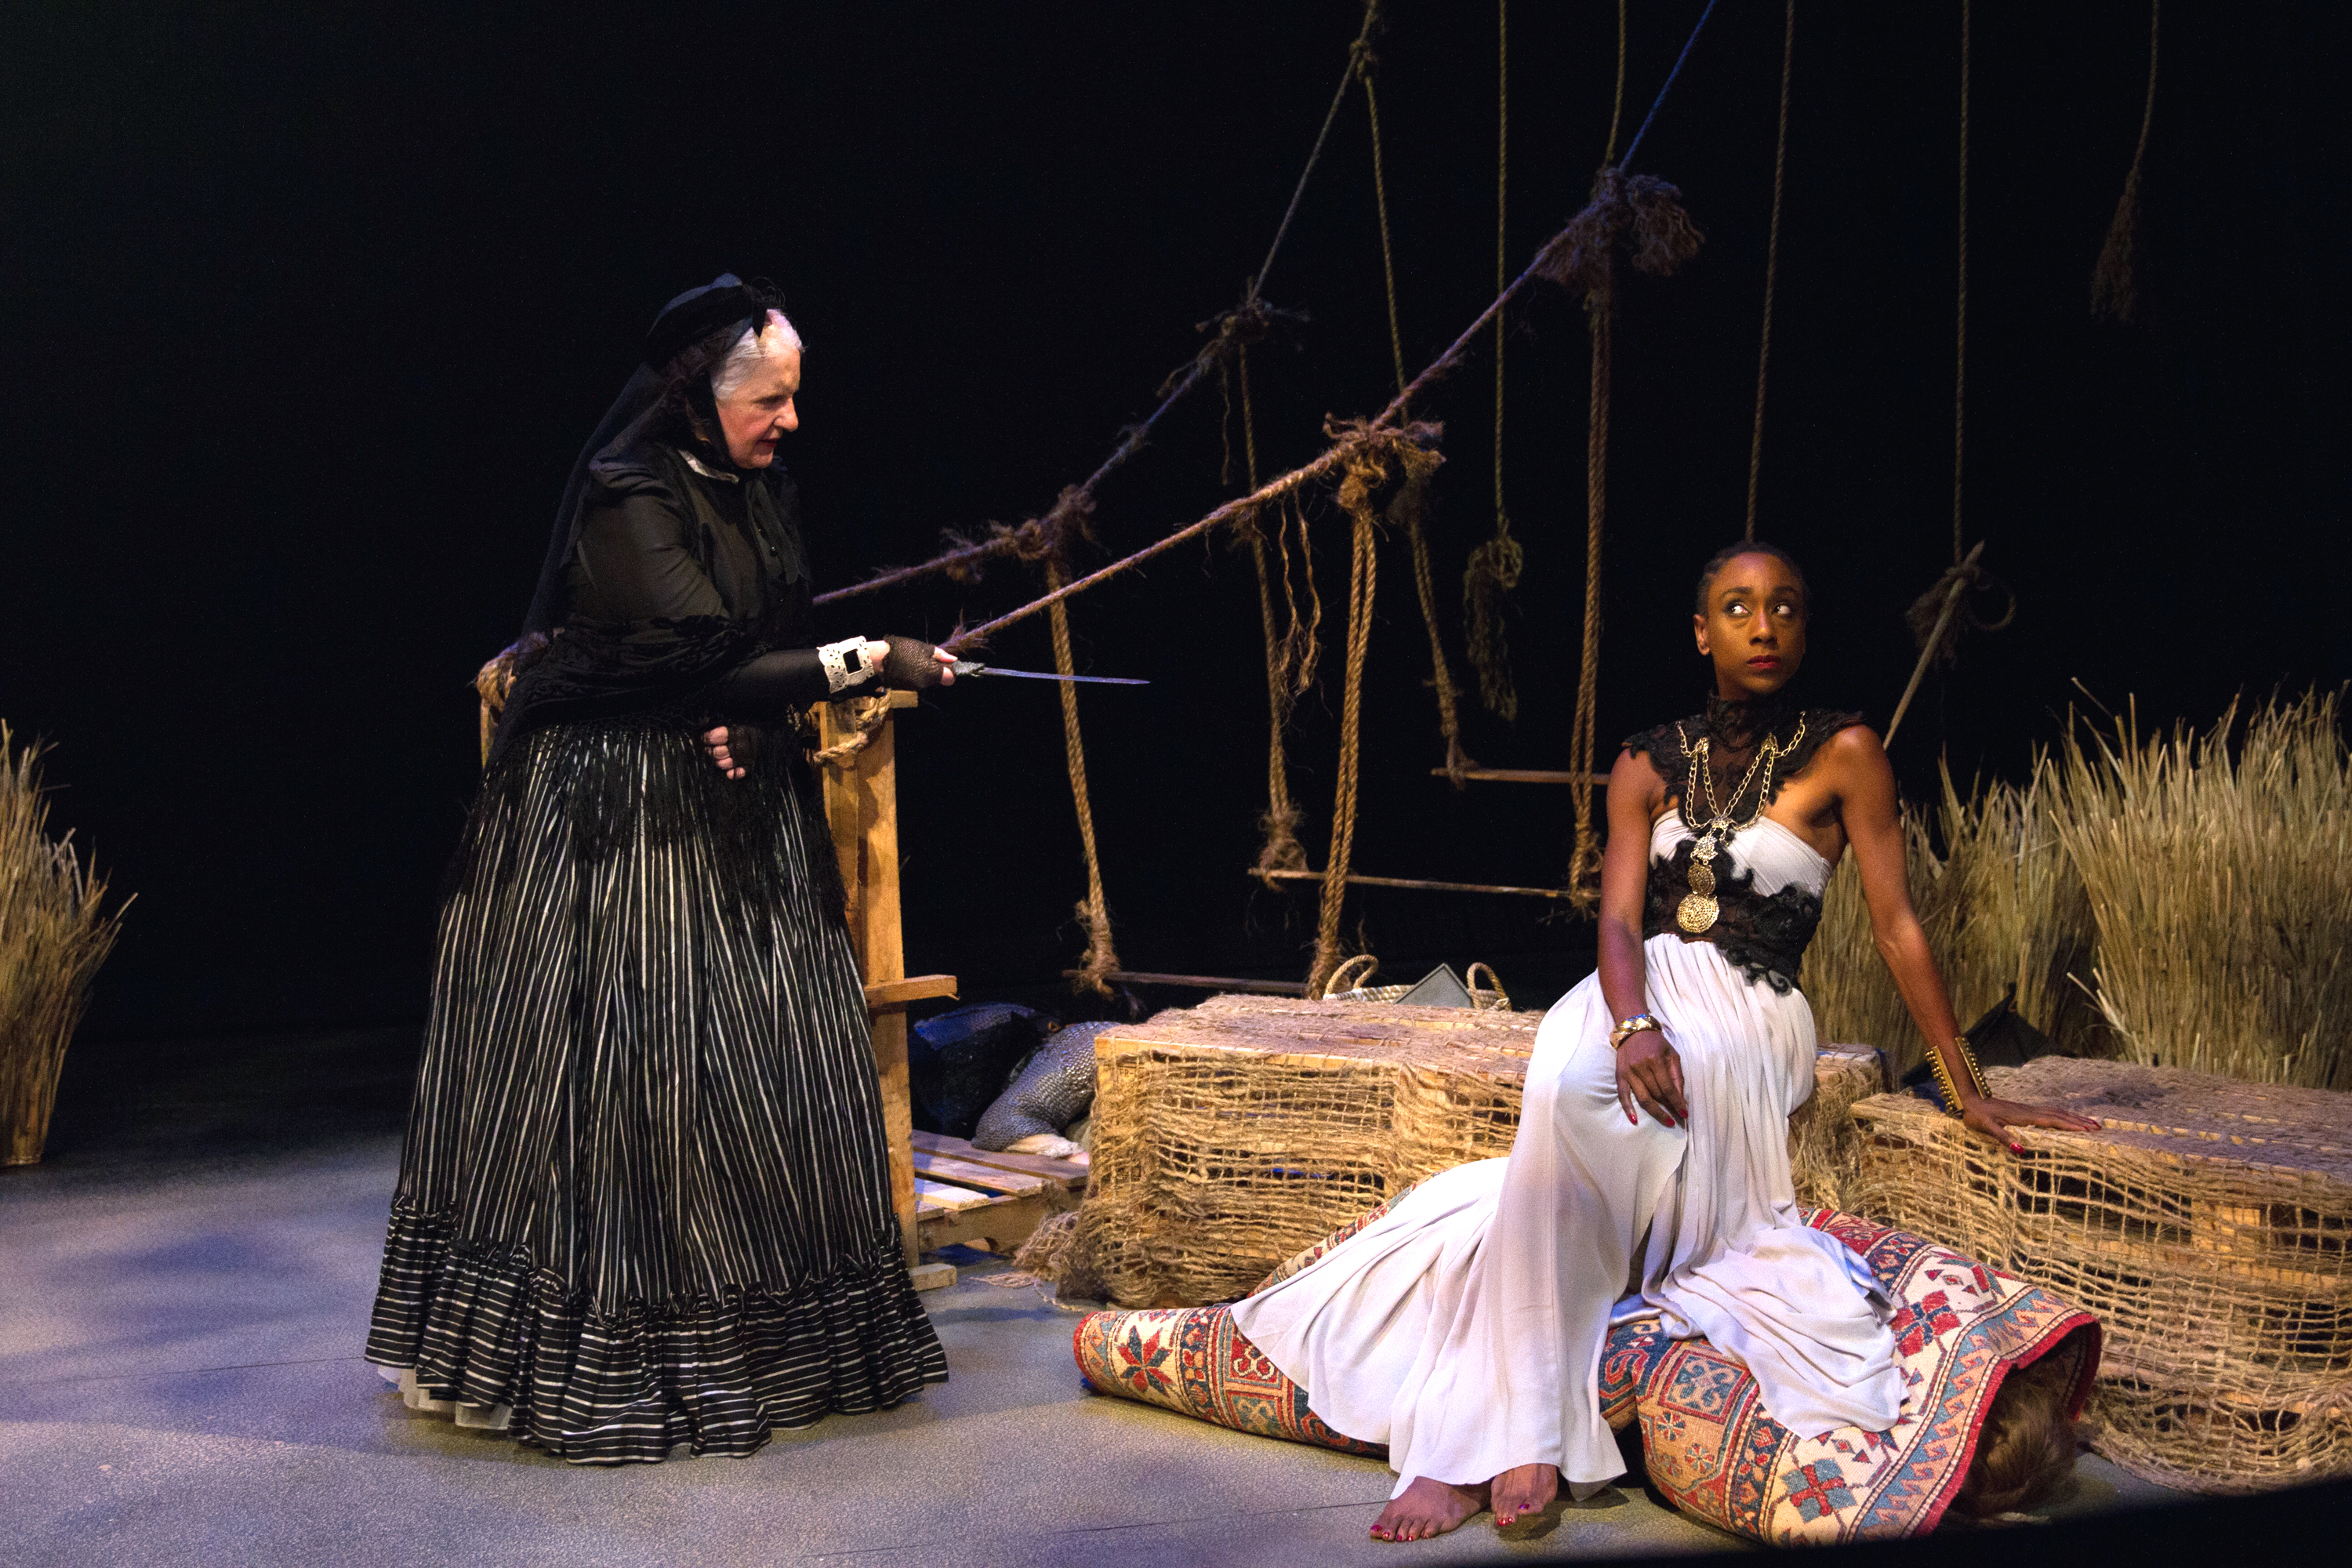 Madalyn McKay as Queen Victoria, Nylda Mark as Cleopatra and Amanda Jones as Anais Nin_Photo by Jody